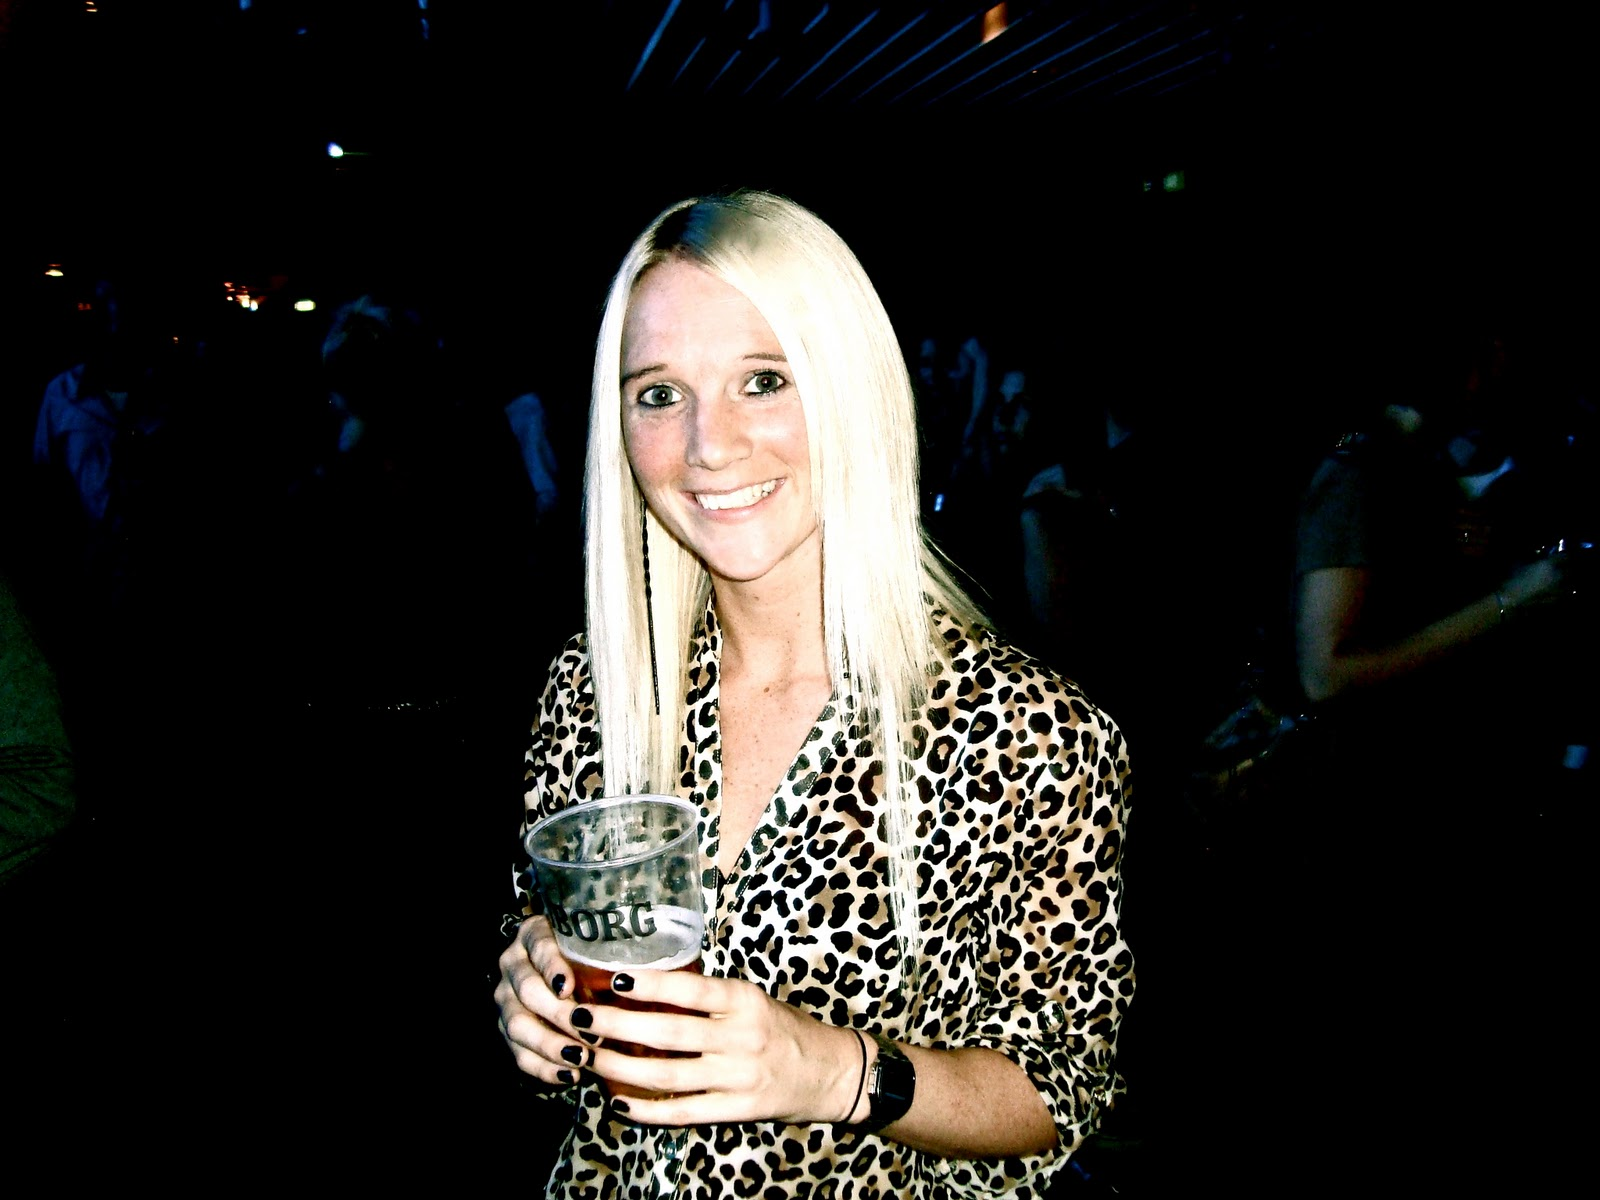 ?ldre dating Odense